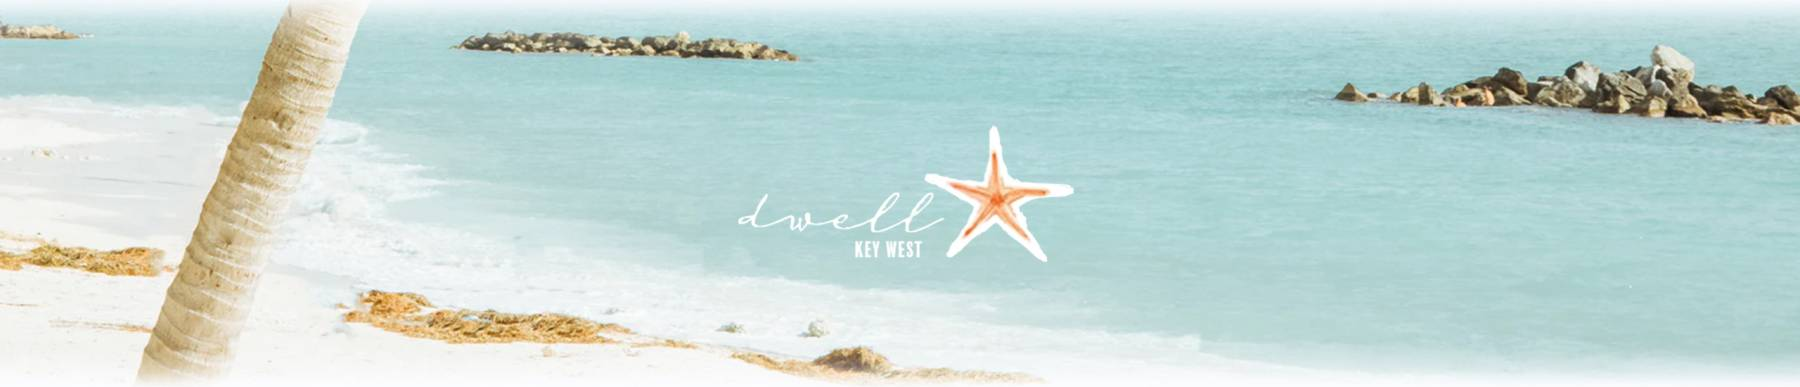 Dwell Key West